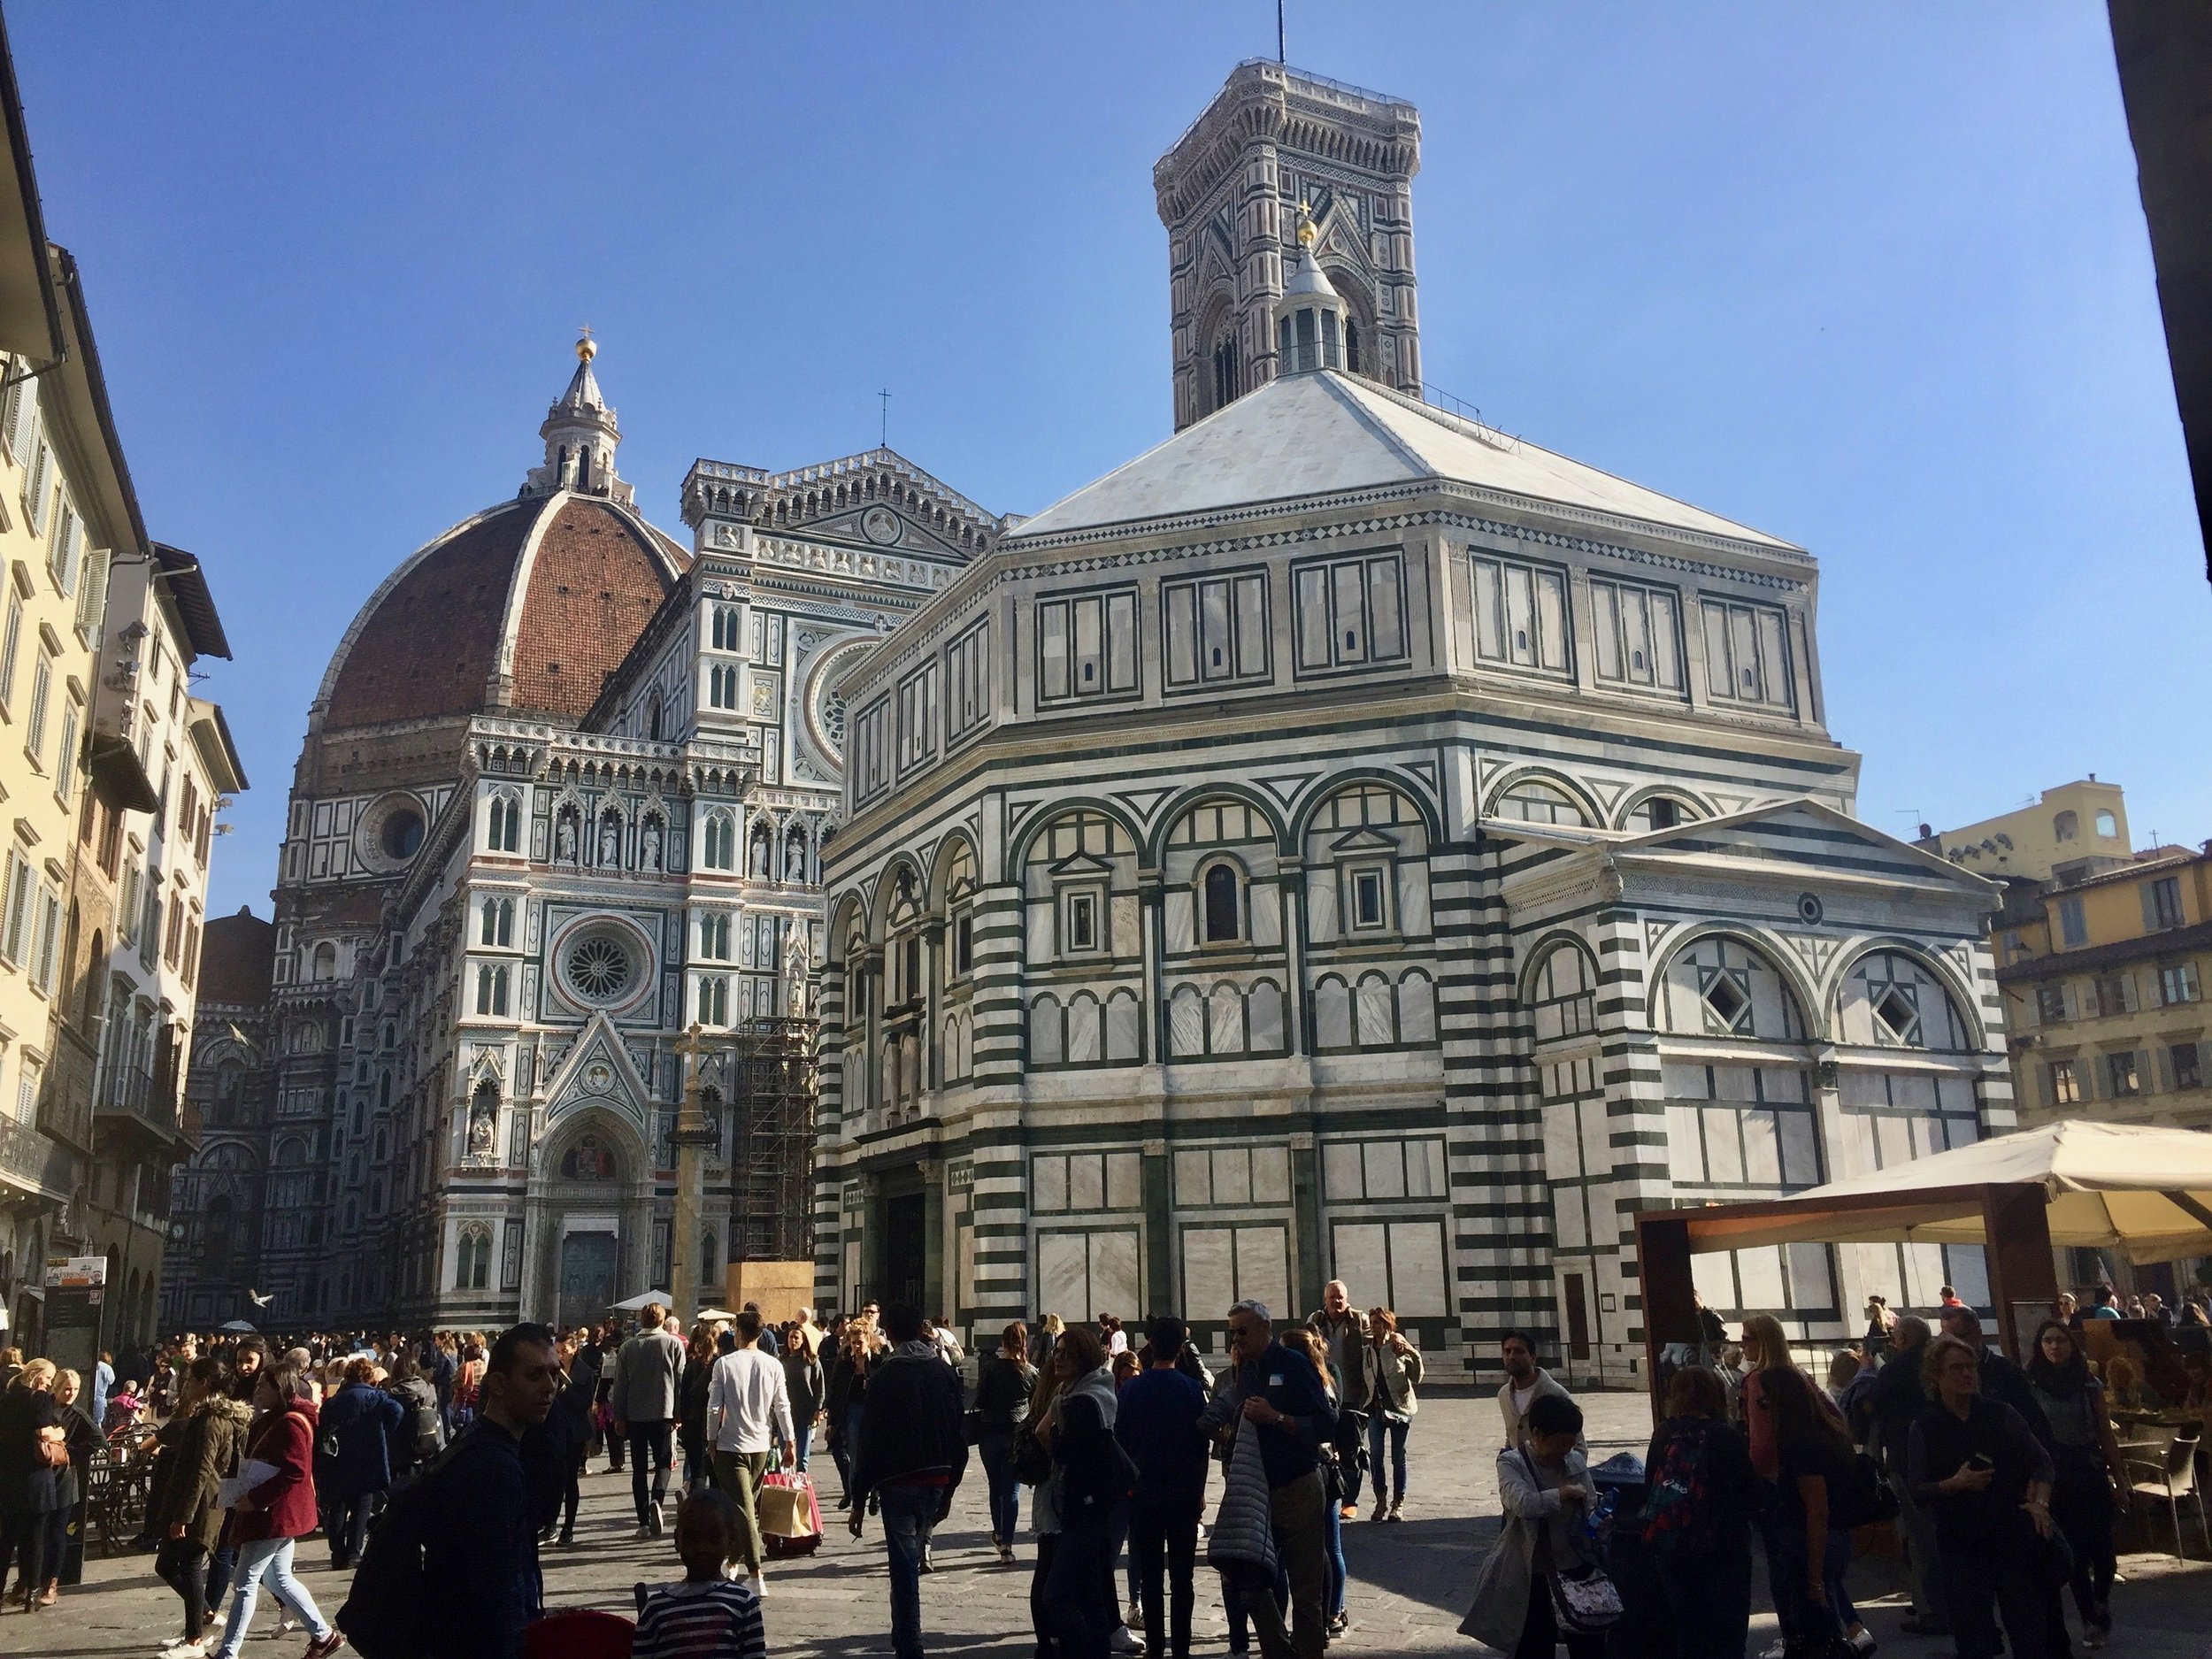 The architecture in Florence is spellbinding